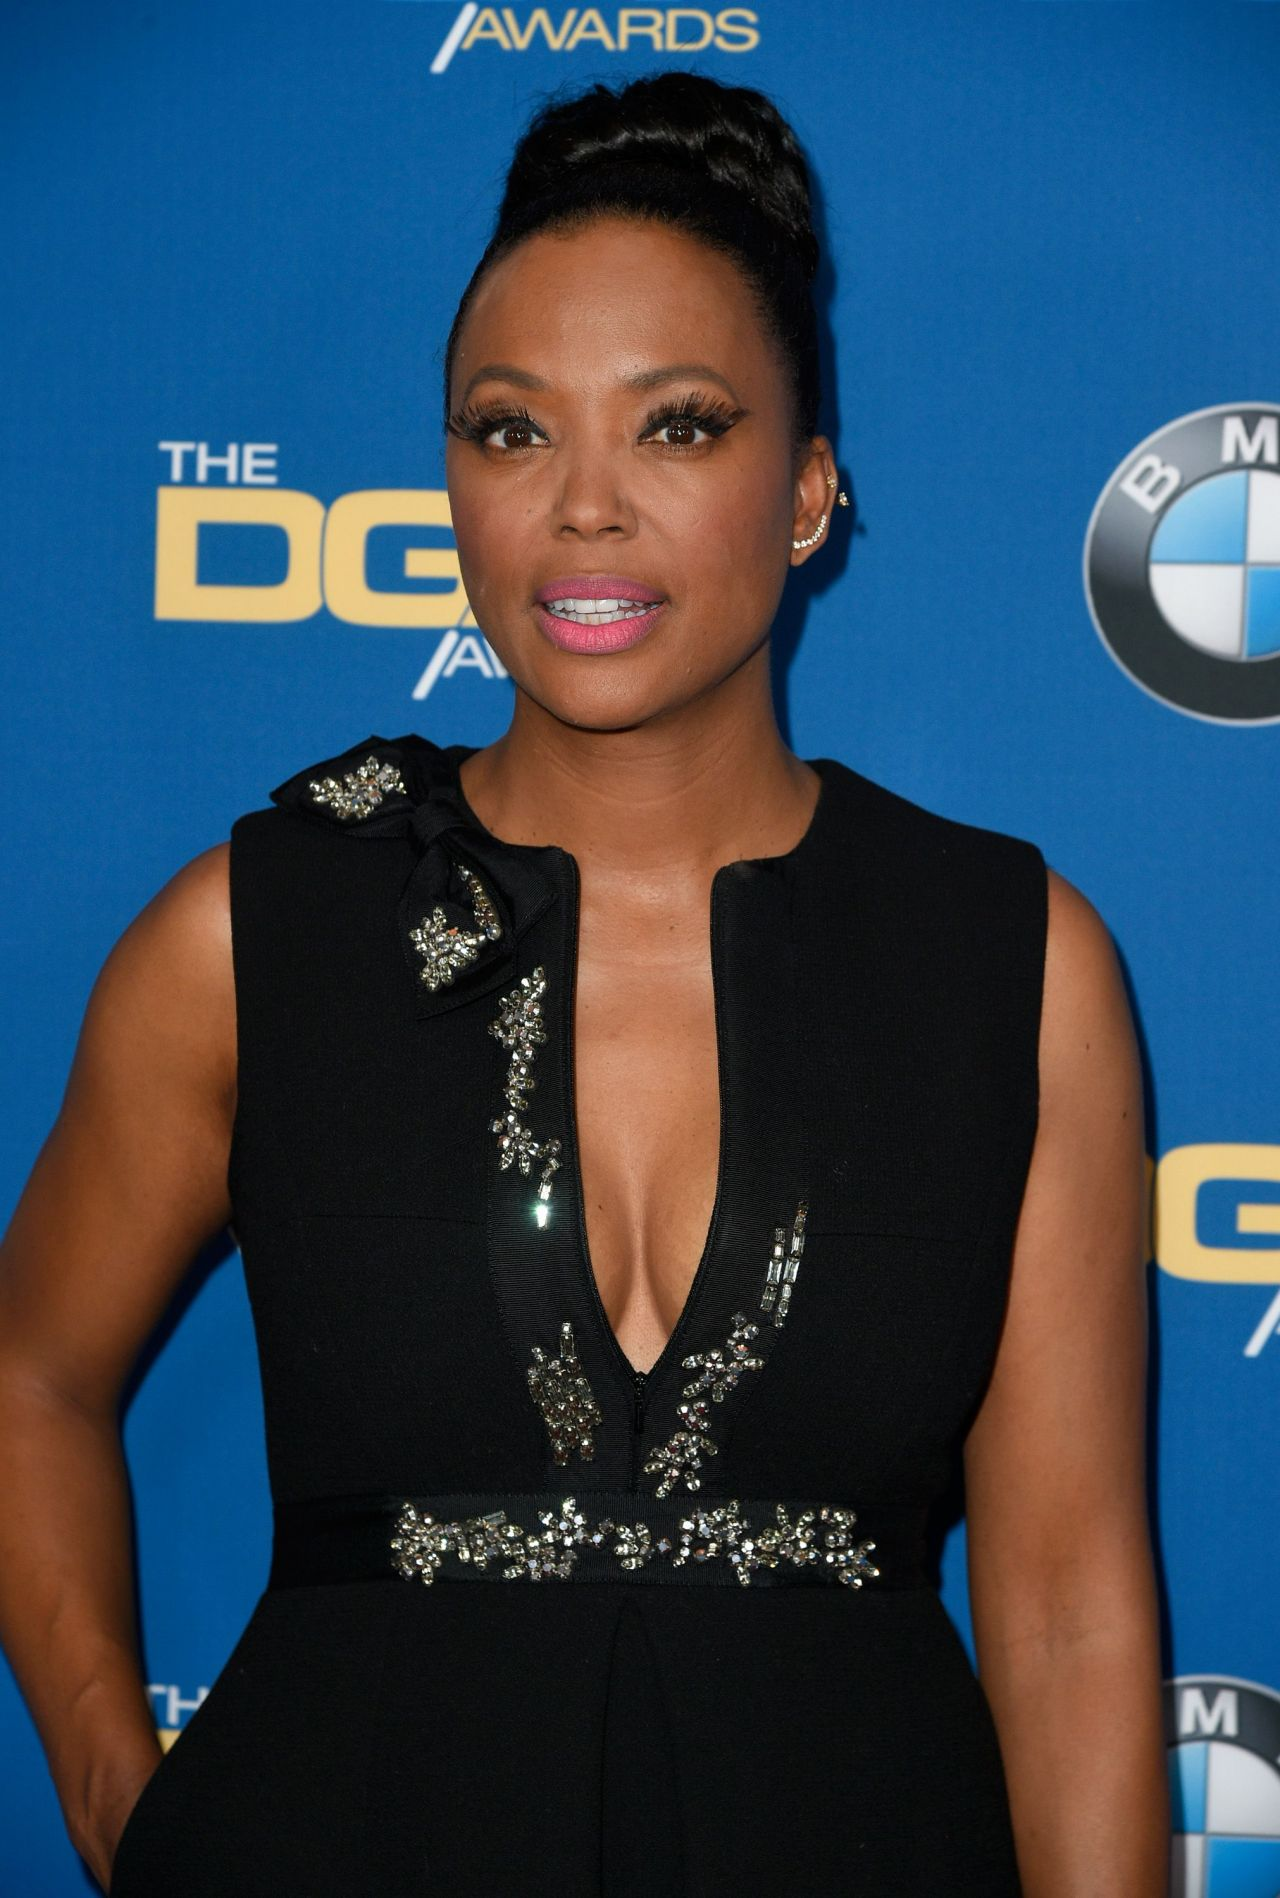 Aisha Tyler nudes (15 foto and video), Sexy, Paparazzi, Twitter, braless 2020